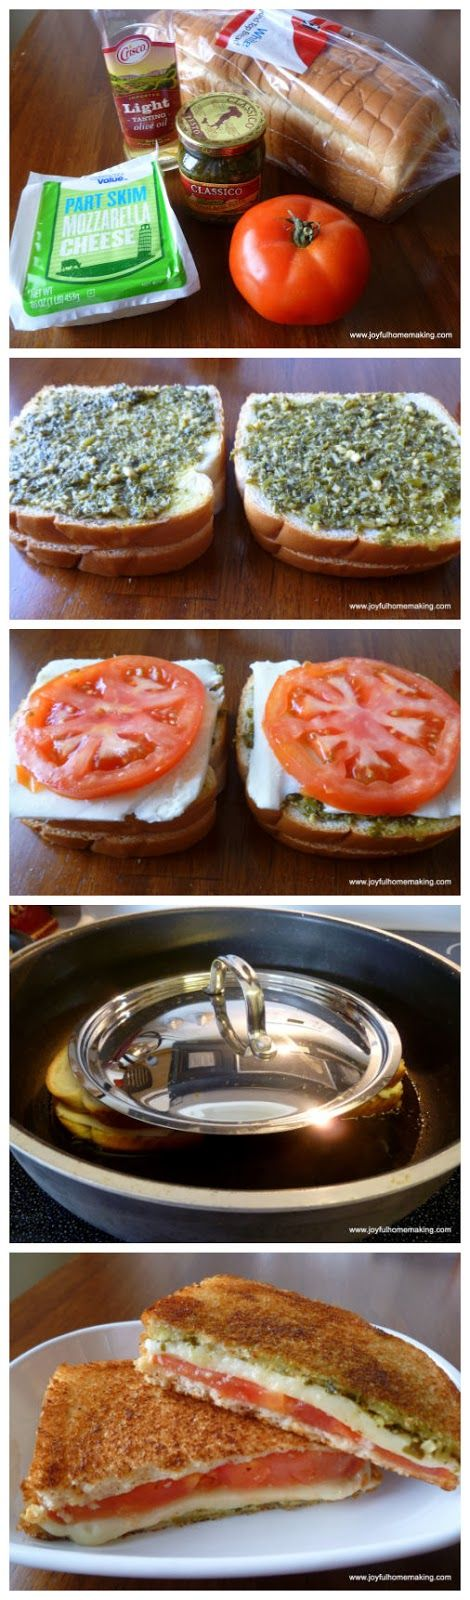 Grilled Cheese with Tomato and Pesto - will try this on a nice whole grain artesian ....not white bread however